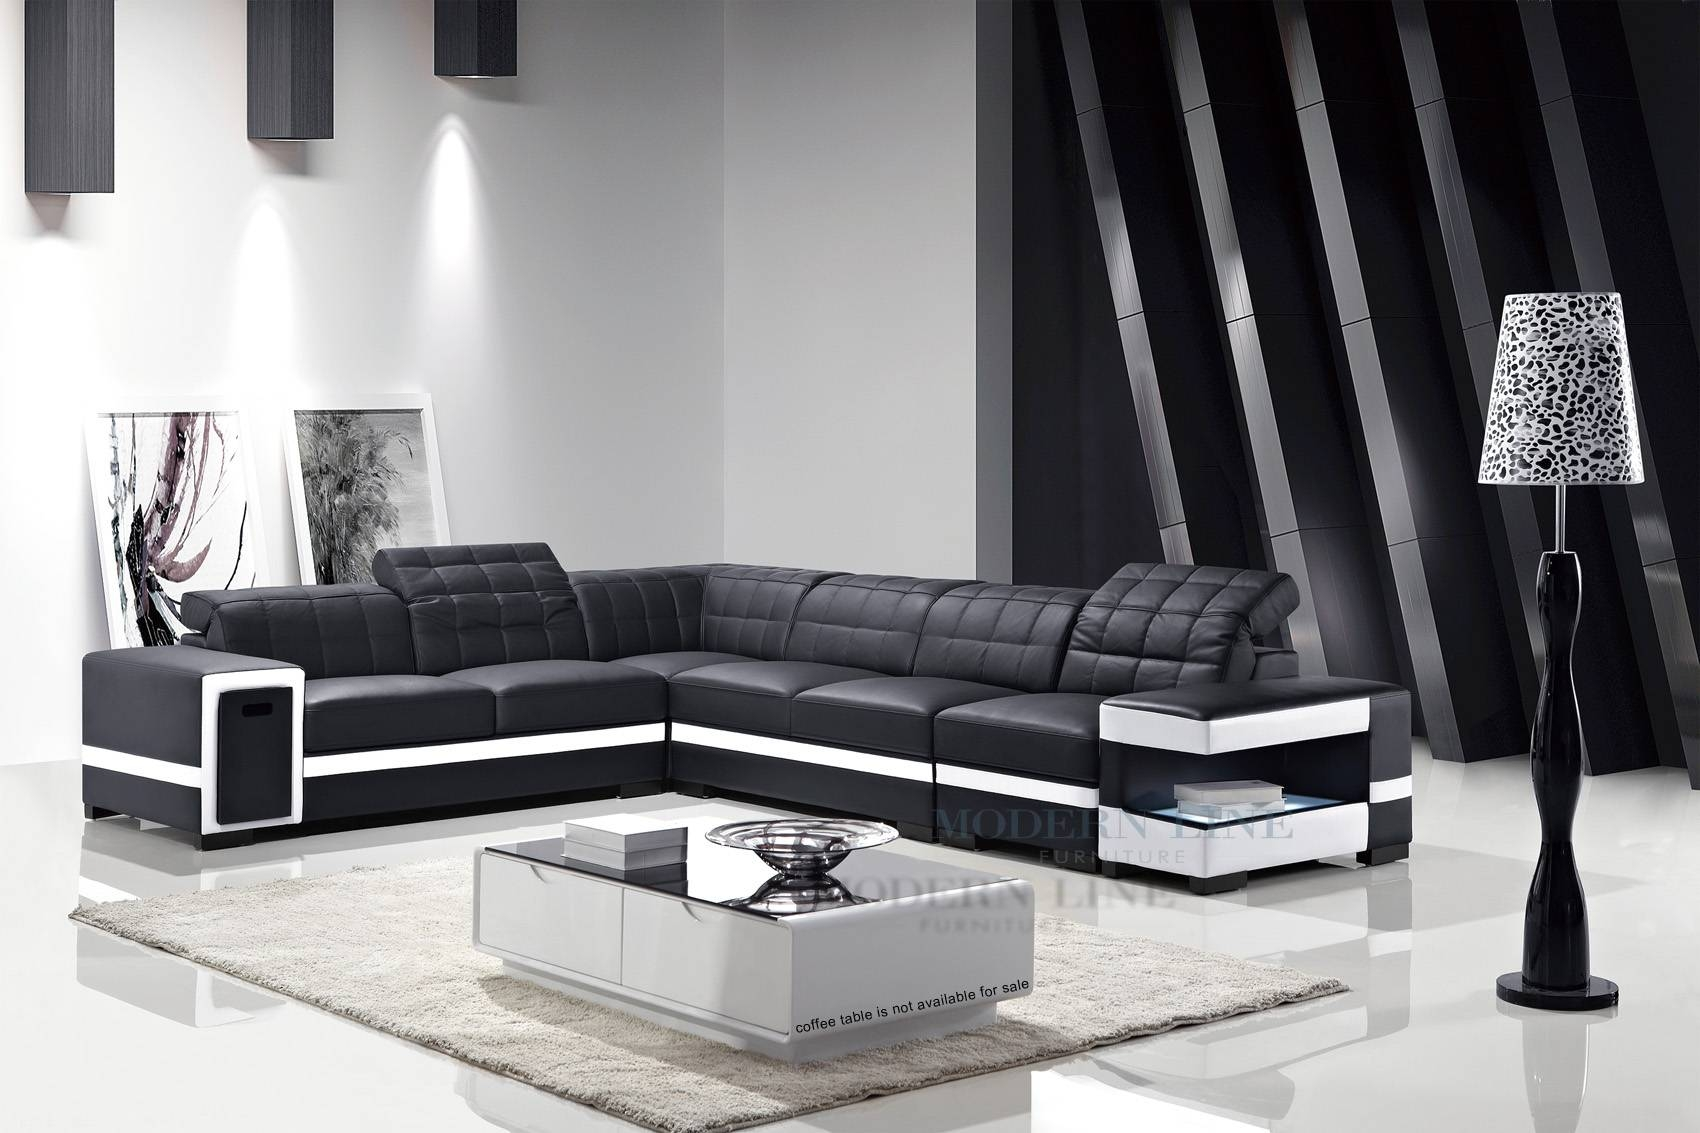 Modern Line Furniture - Commercial Furniture - Custom Made with Black and White Sectional Sofa (Image 22 of 30)